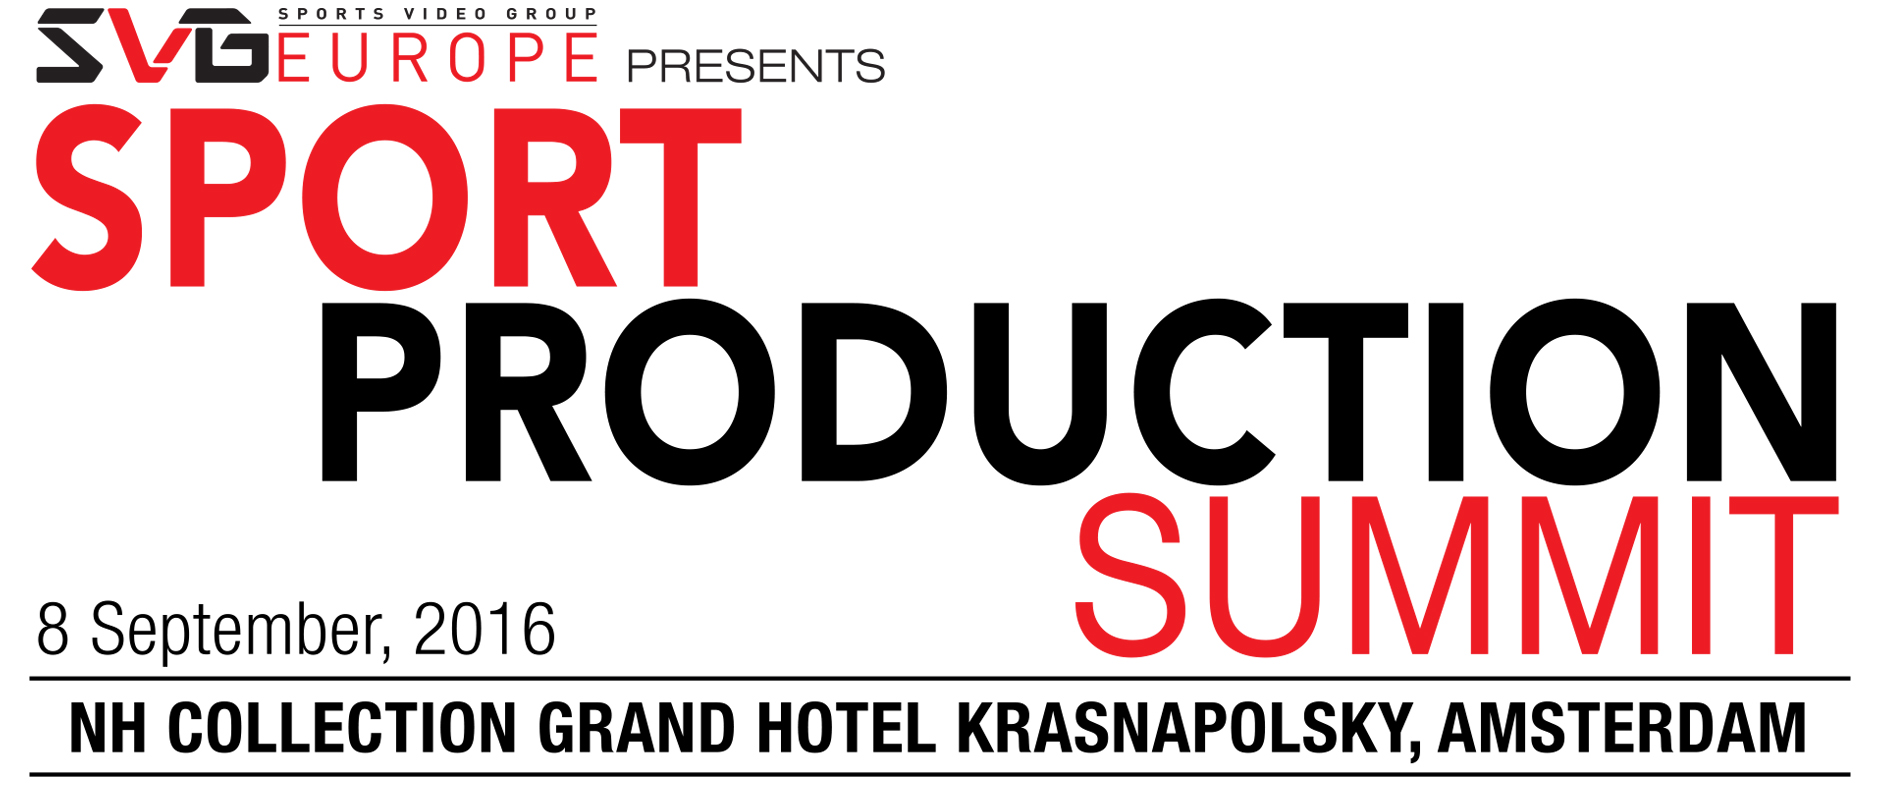 AJA Exhibits at the SVG Europe Sport Production Summit